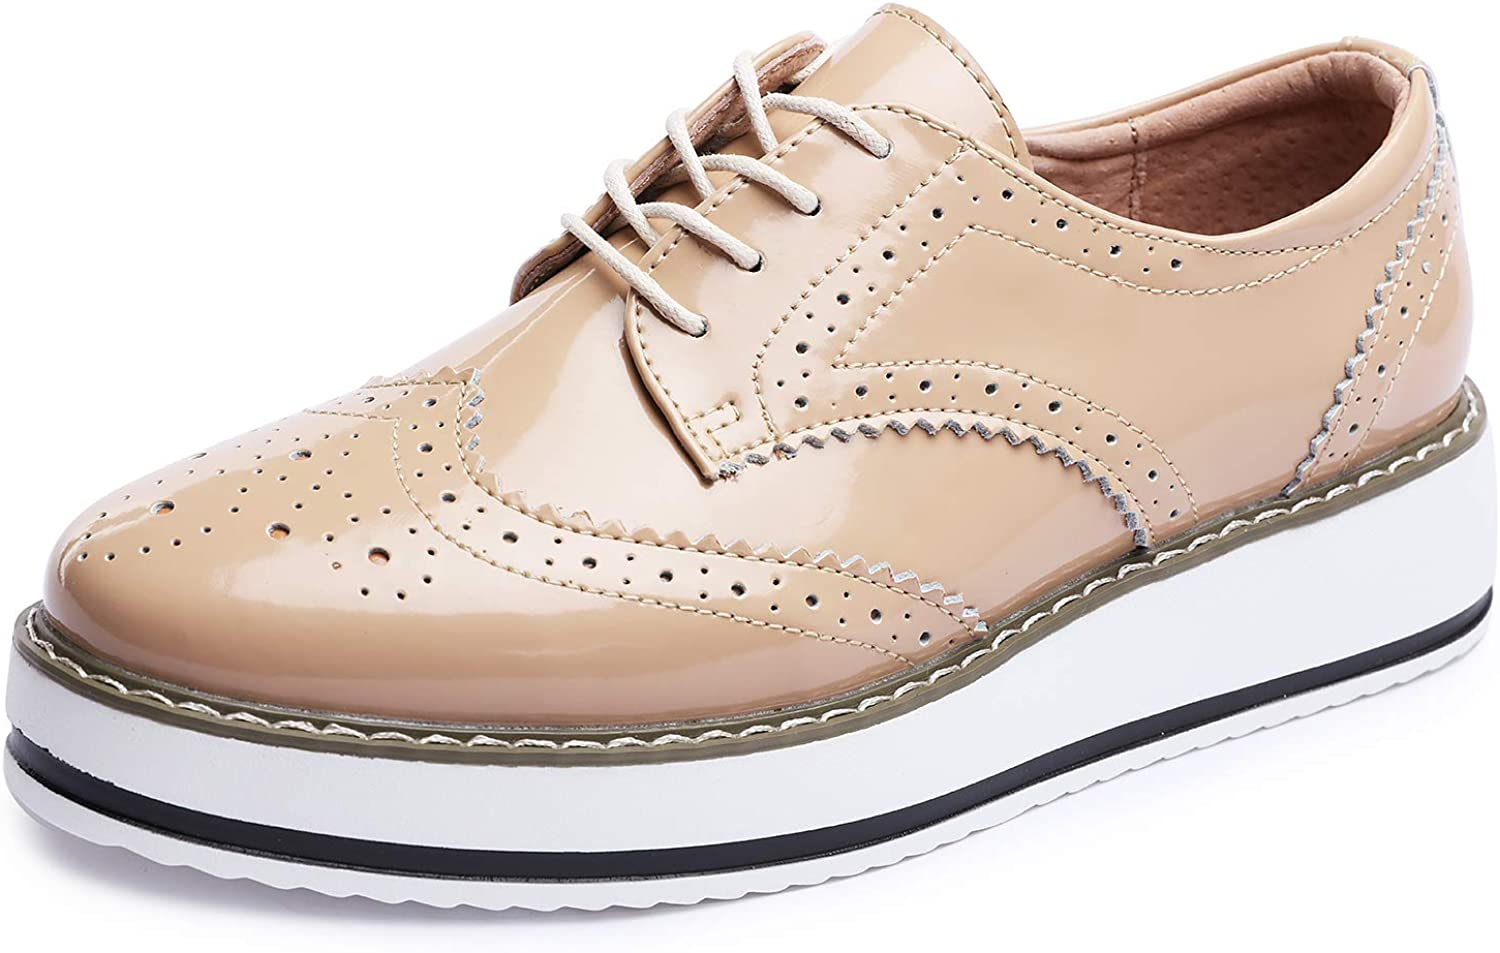 Catata Womens Wingtip Wedges Oxfords Lace-up Platform Brogues Wedding Dress Shoes